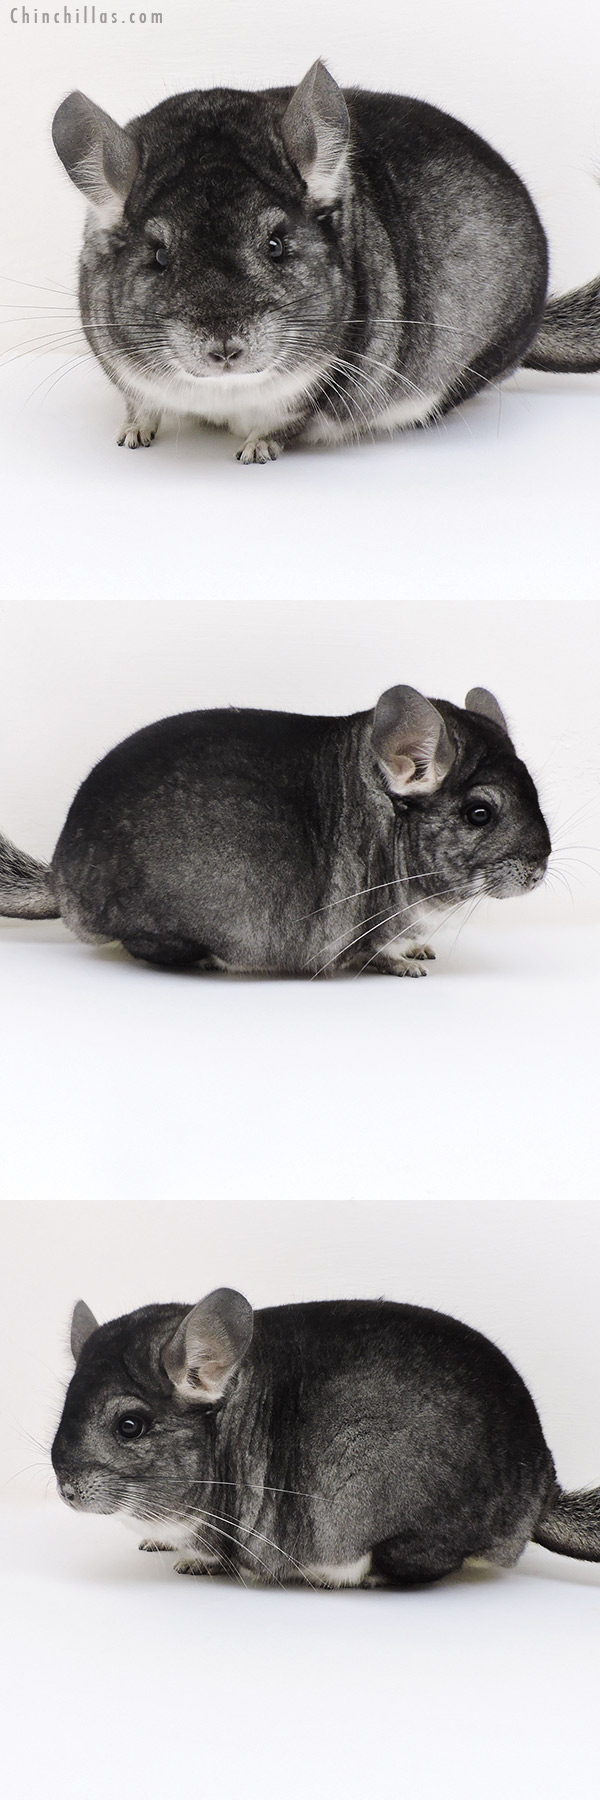 17131 Large Blocky Herd Improvement Quality Standard Male Chinchilla